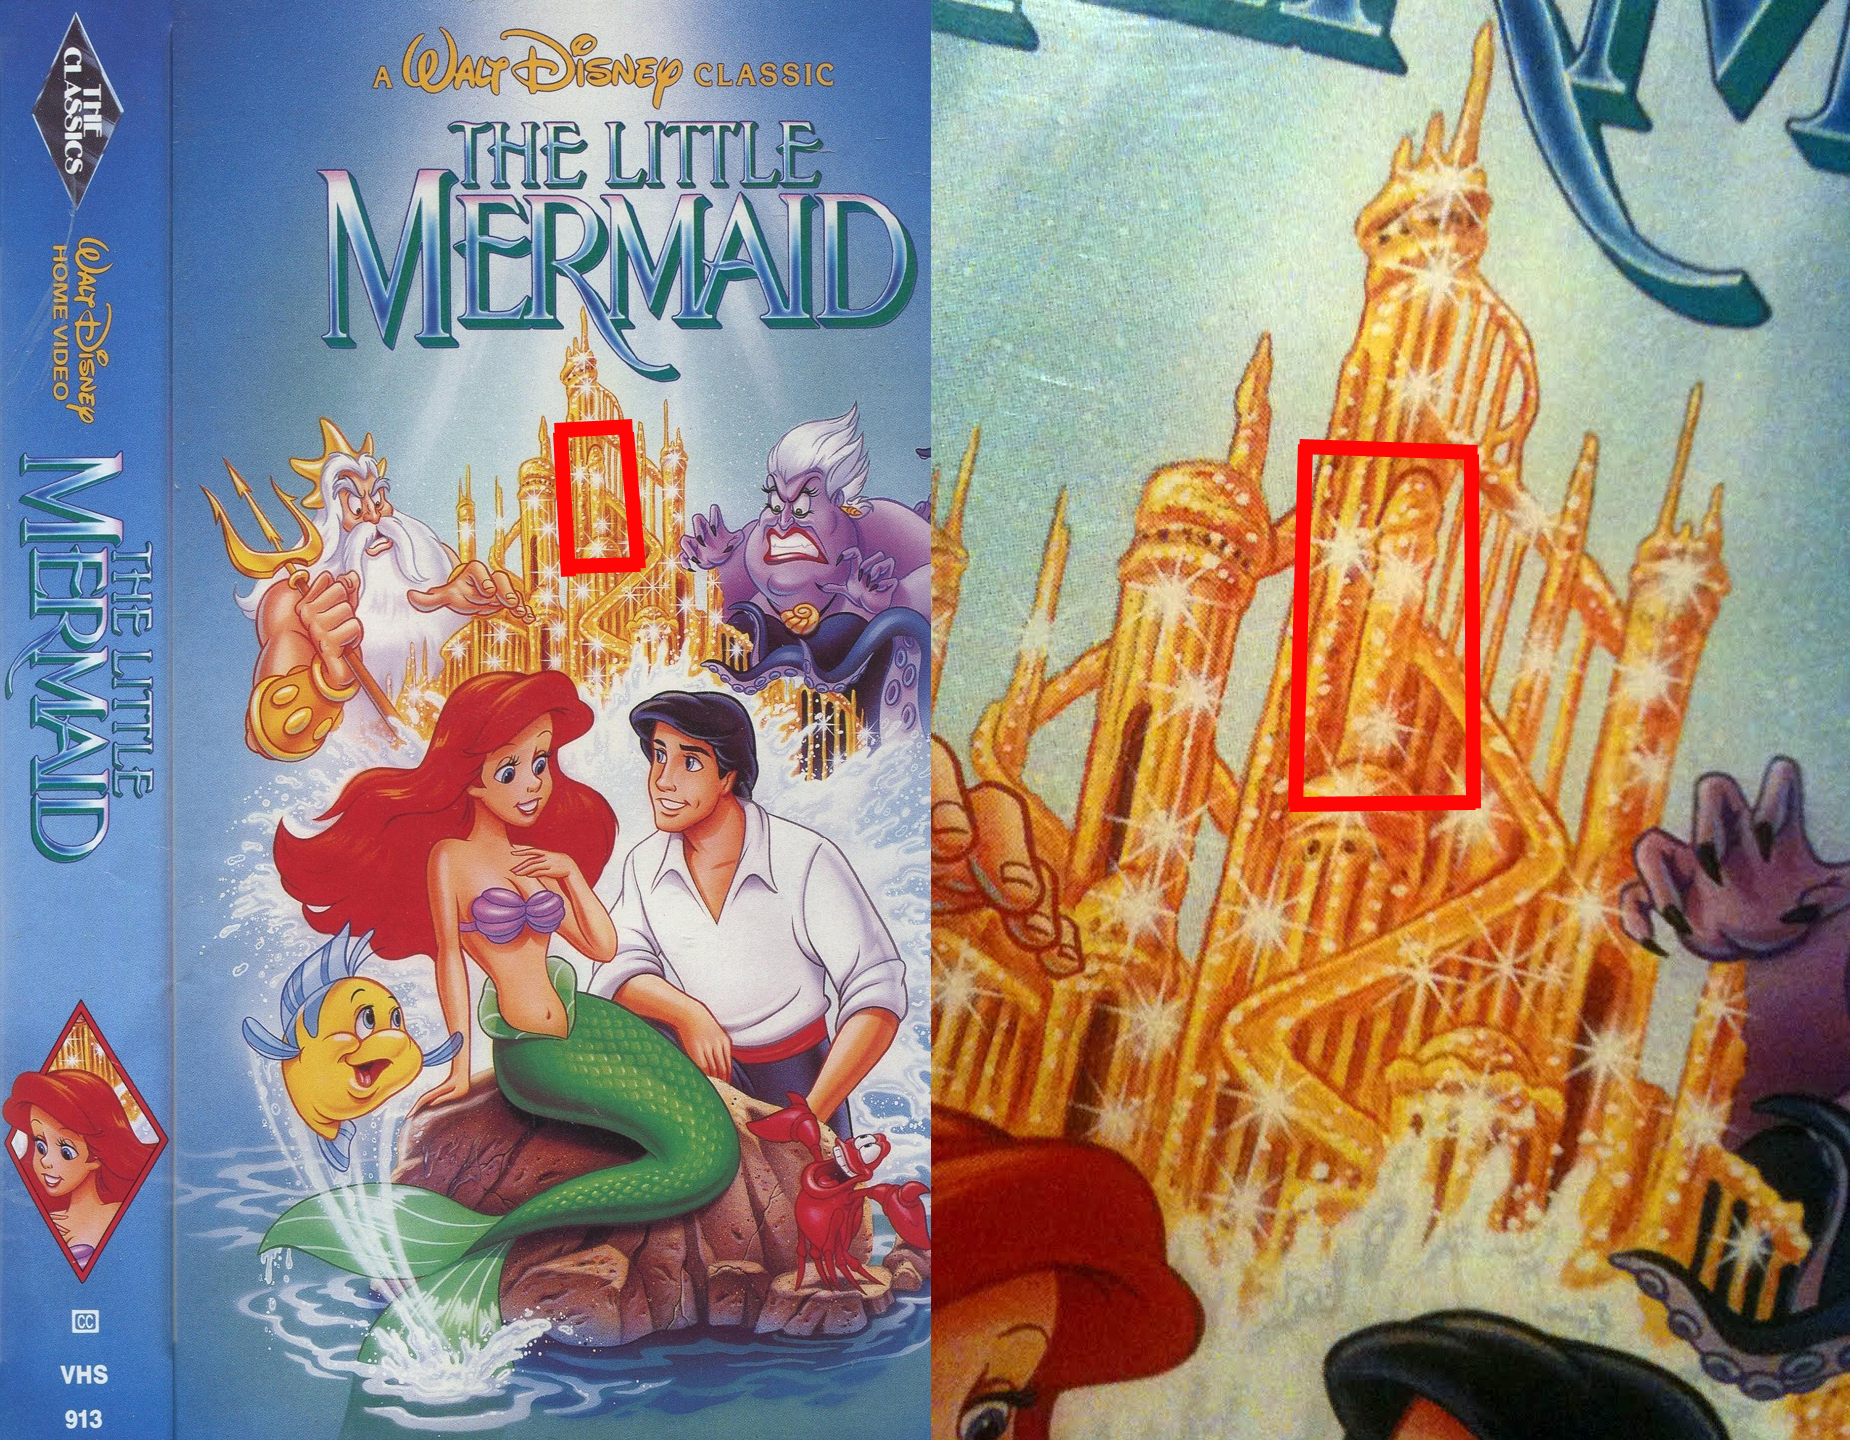 12 Hidden Sexual Images In Disney Movies